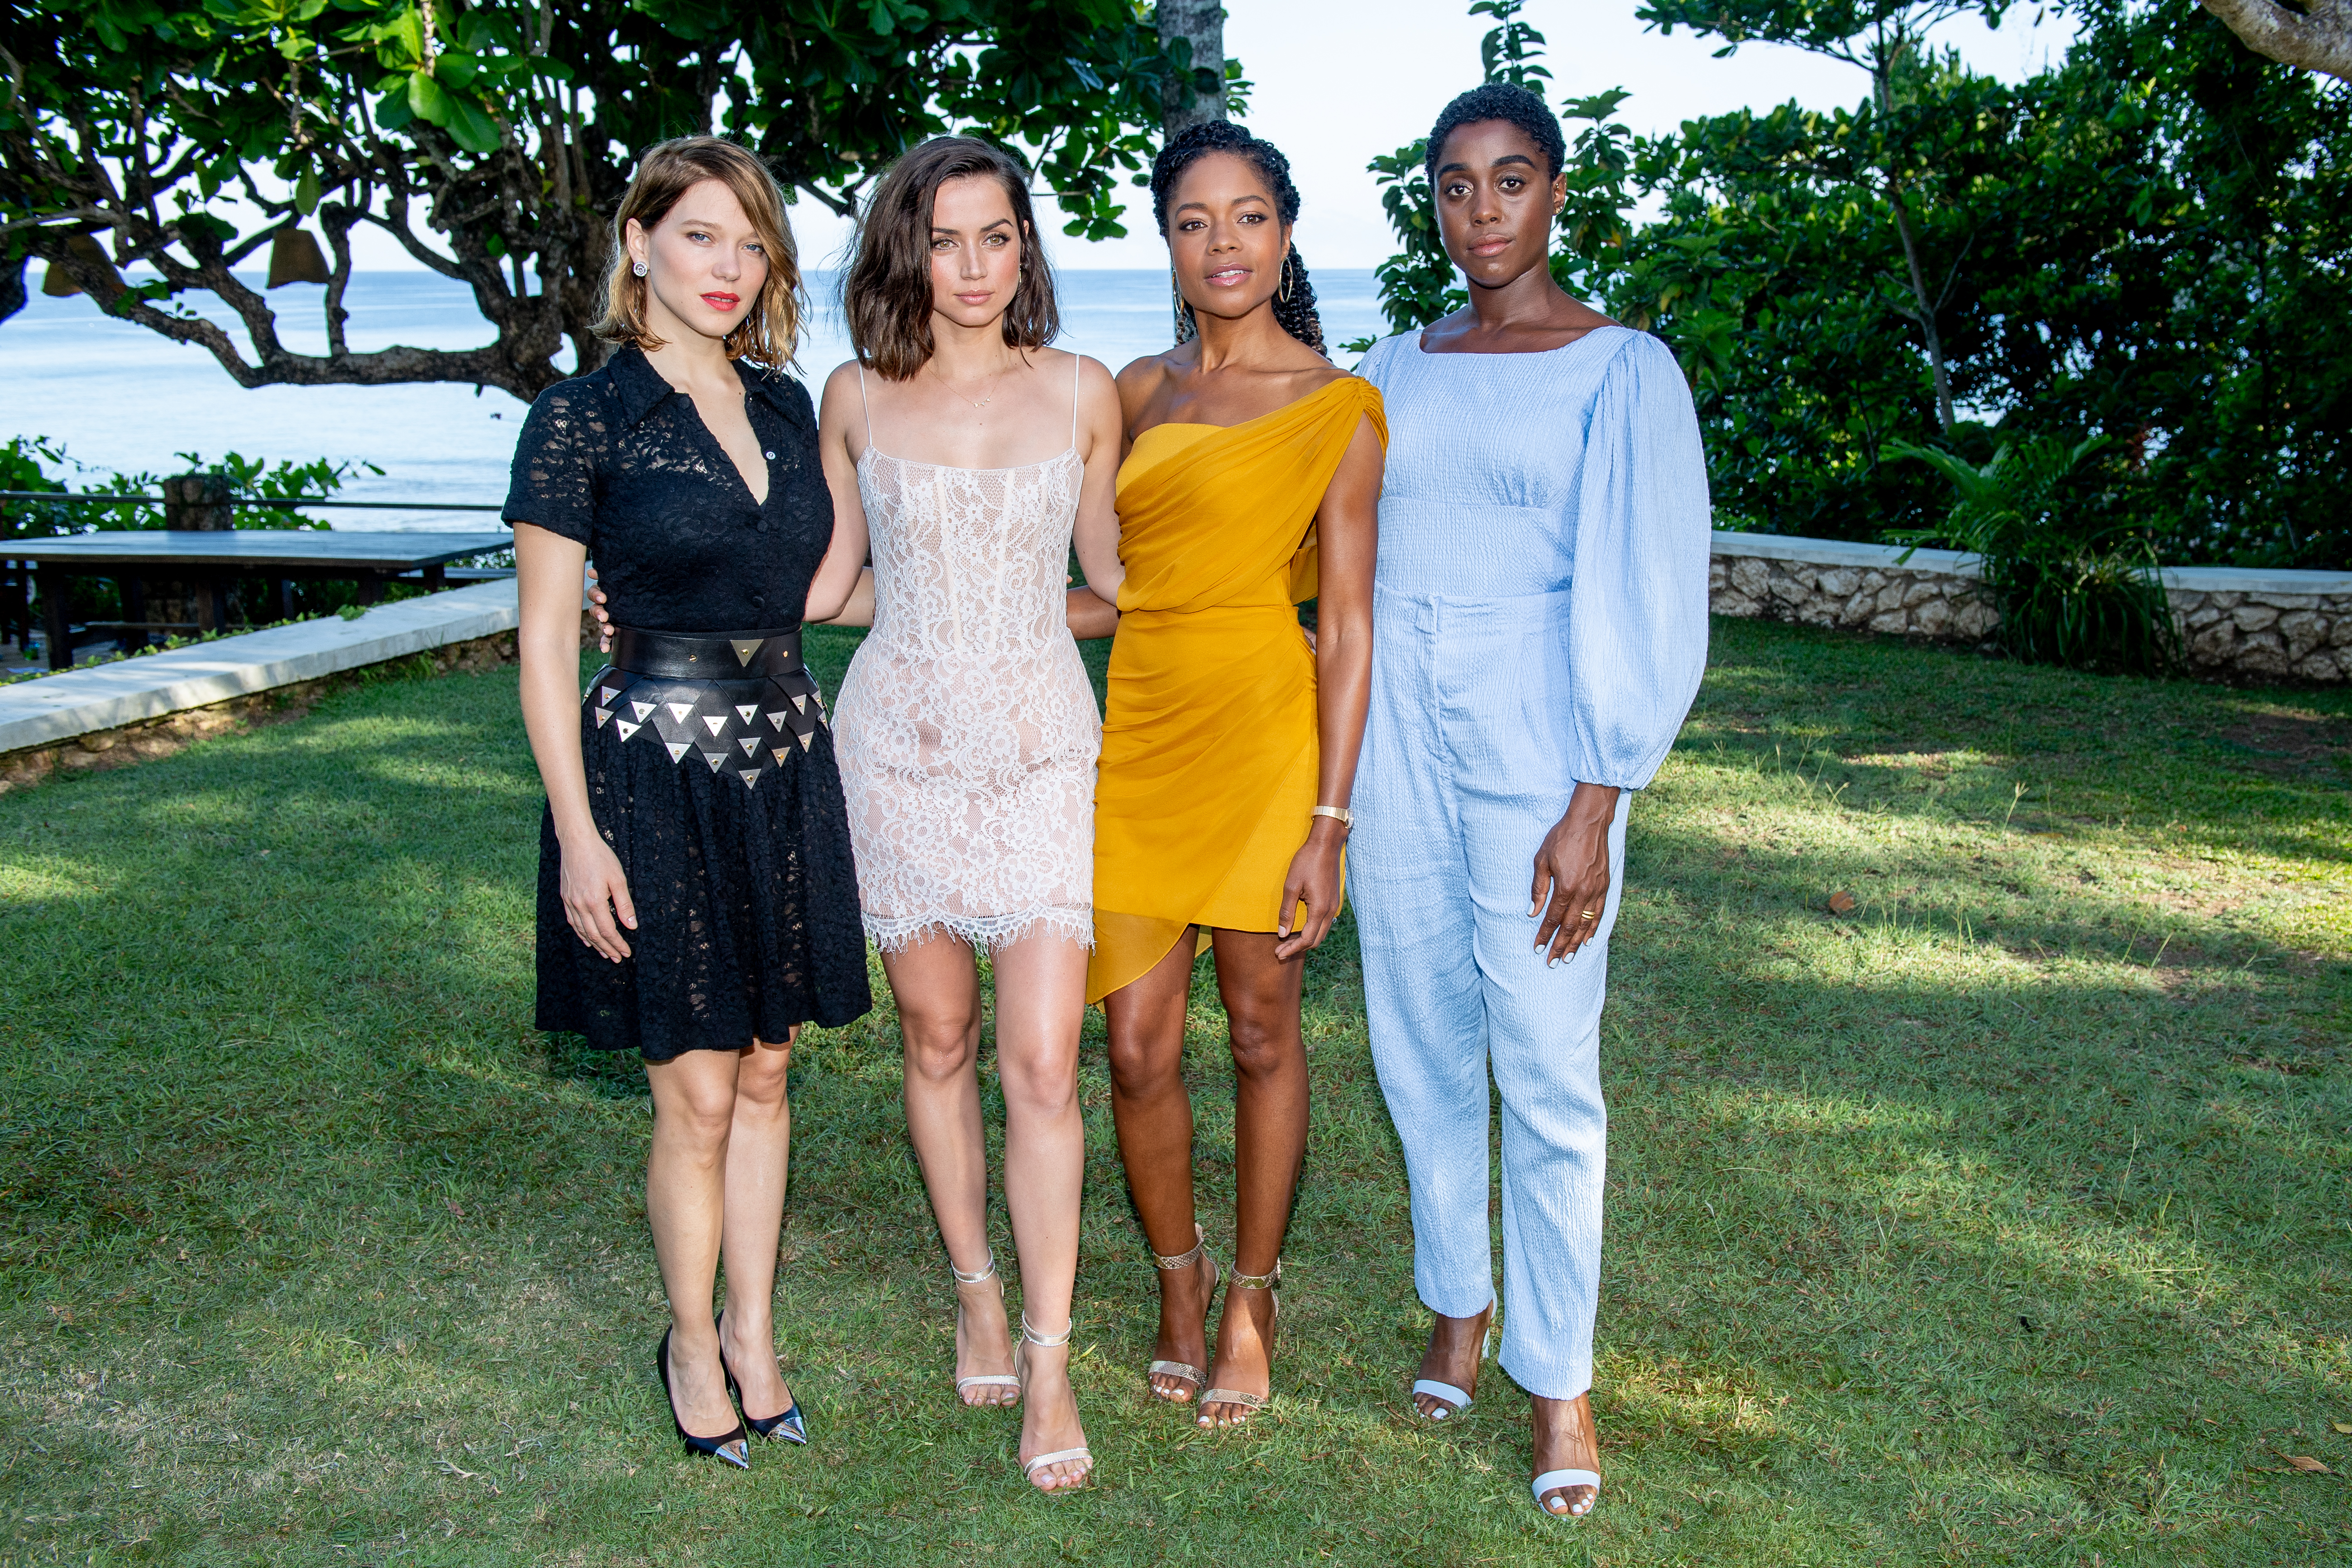 Naomie Harris, Ana de Armas, Léa Seydoux, and Lashana Lynch at an event for No Time to Die (2021)